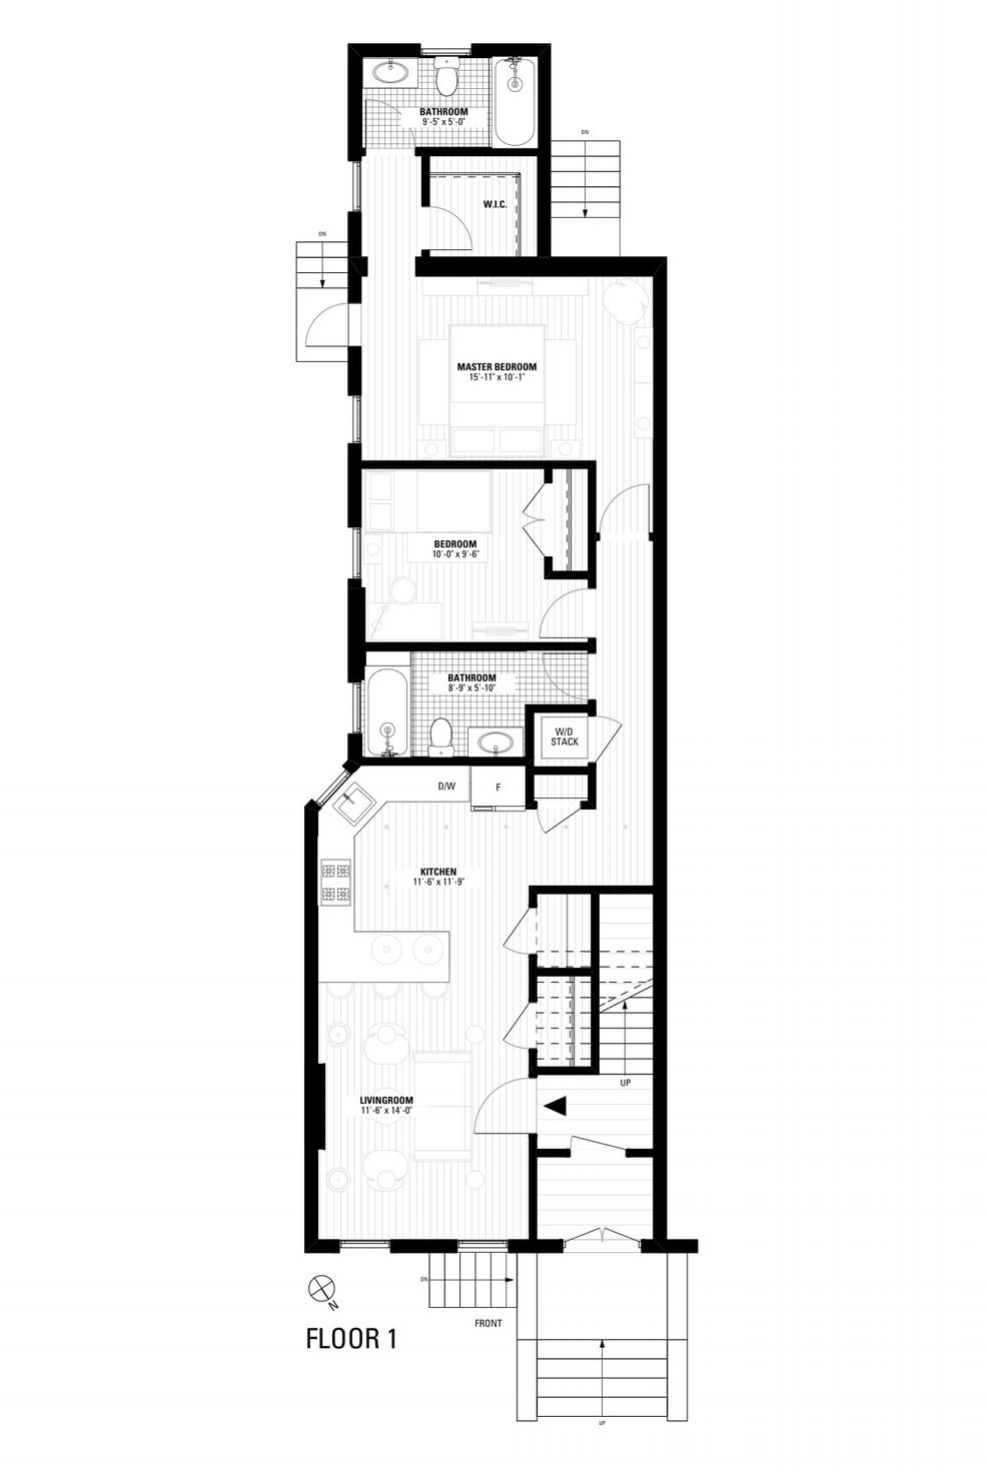 11 Jefferson - 170601 - Brochure Plans-1.jpg